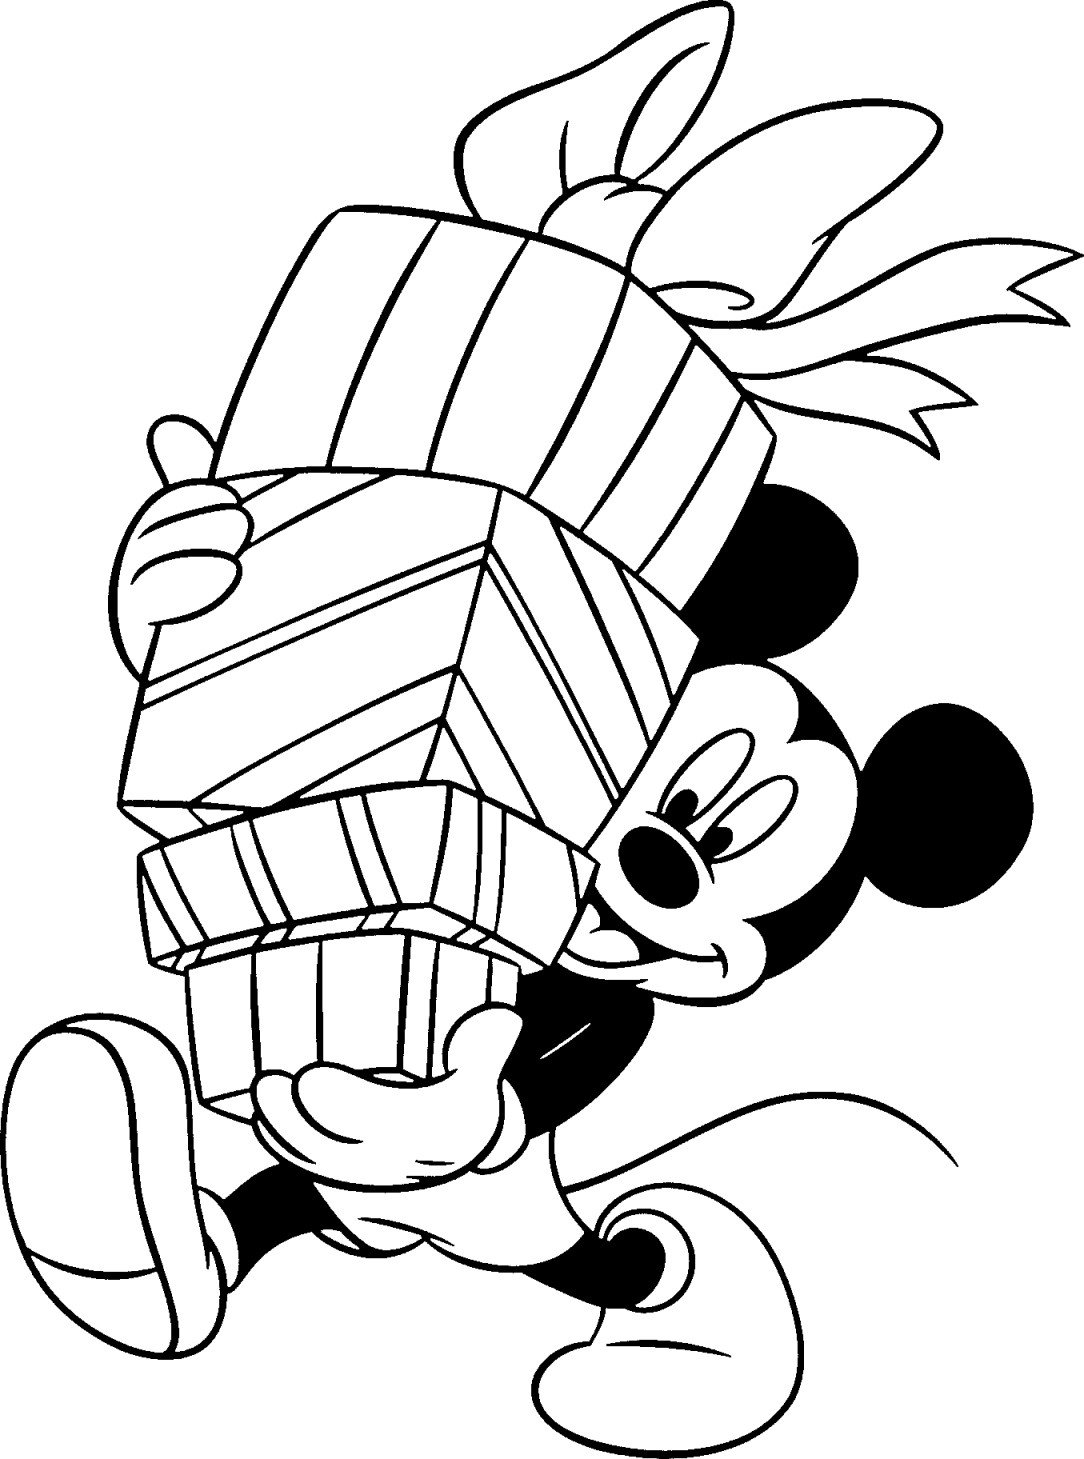 mickey mouse coloring pictures best mickey mouse coloring pages image big collection mouse mickey pictures coloring